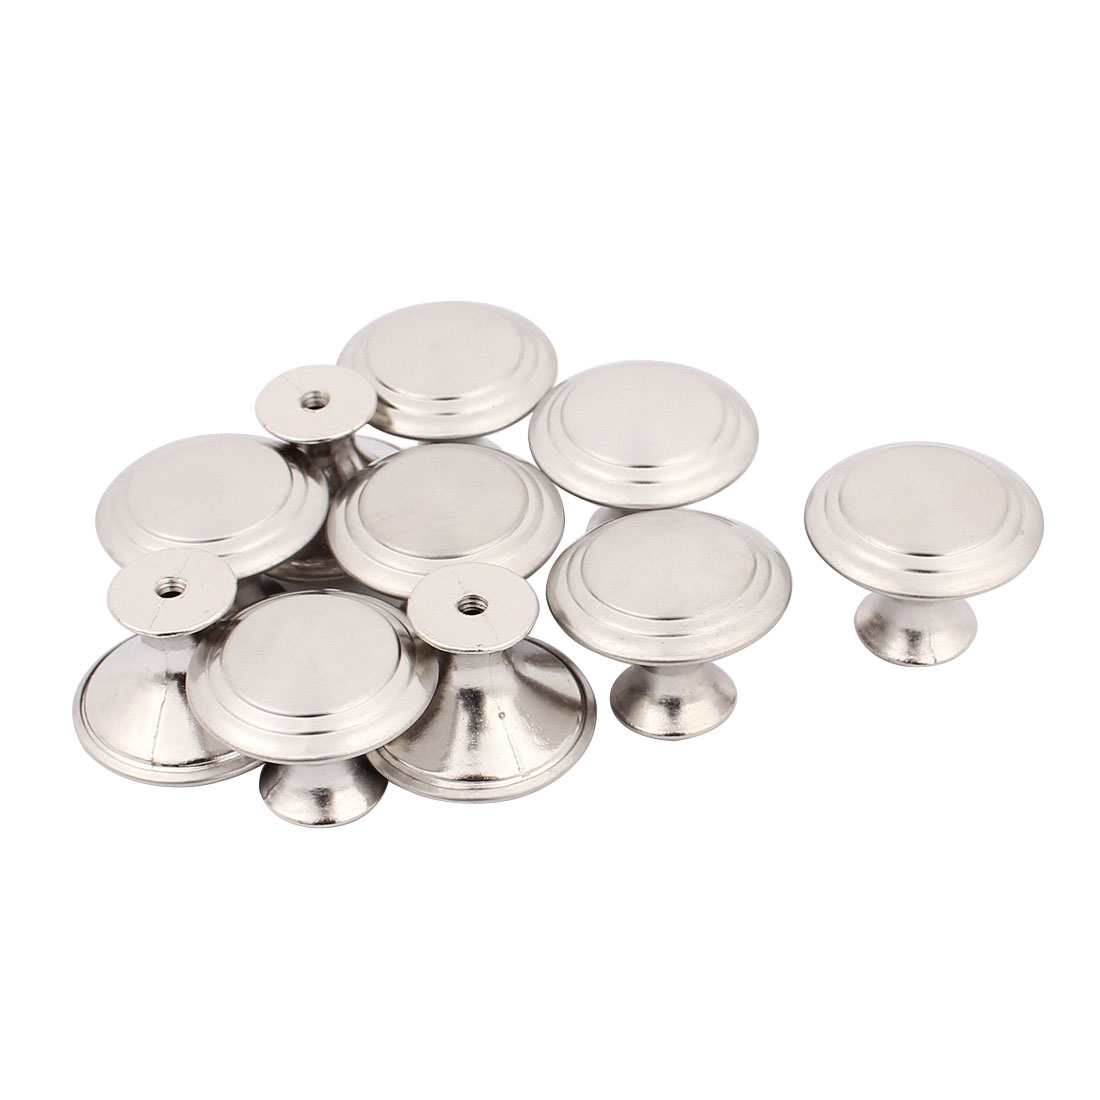 Household Closet Chest Stainless Steel Single Hole Pull Knobs 27.5mmx22mm 10pcs